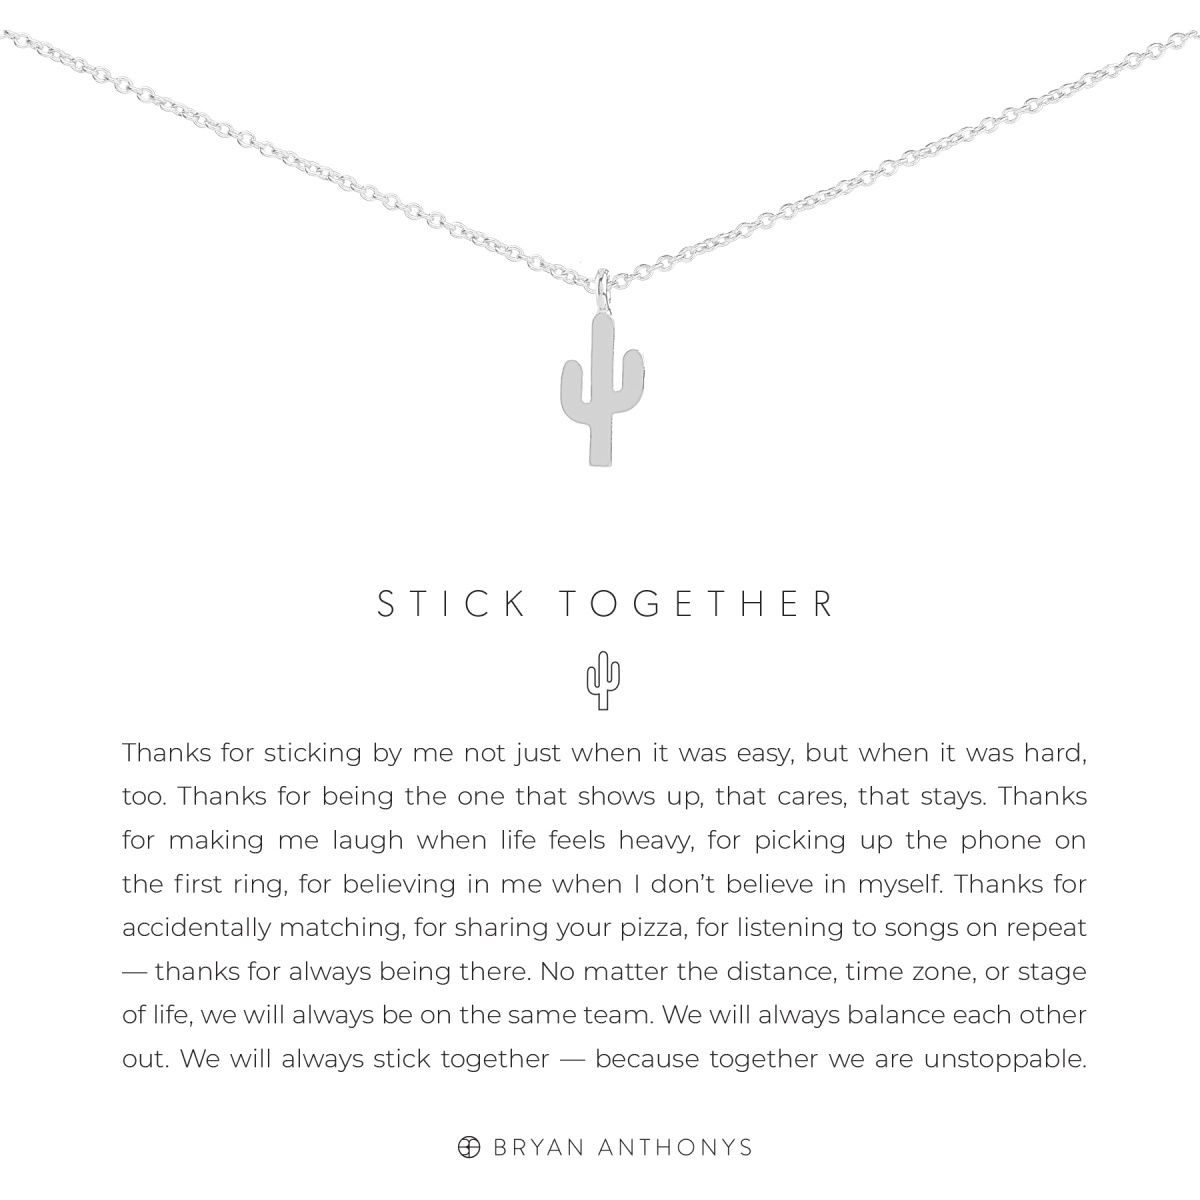 Bryan Anthonys Bryan Anthonys Stick Together Necklace